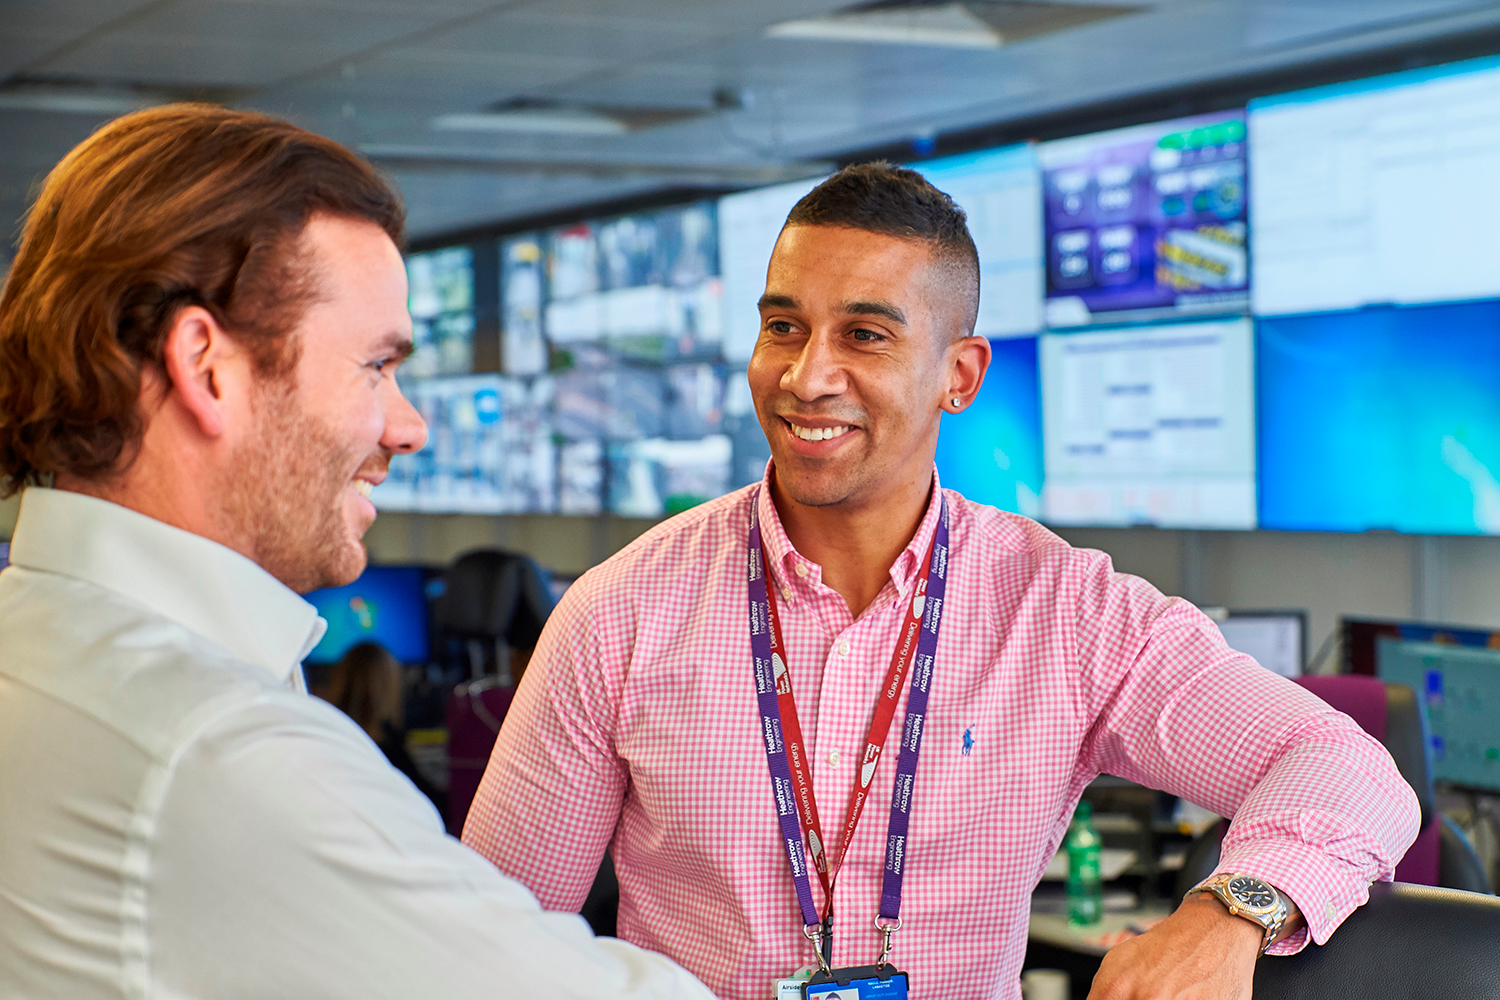 Raoul Parkar-Labastide & Louis Cruickshank Airport Duty Engineers working in the Heathrow Airport Operations Centre. (Image: © Heathrow)